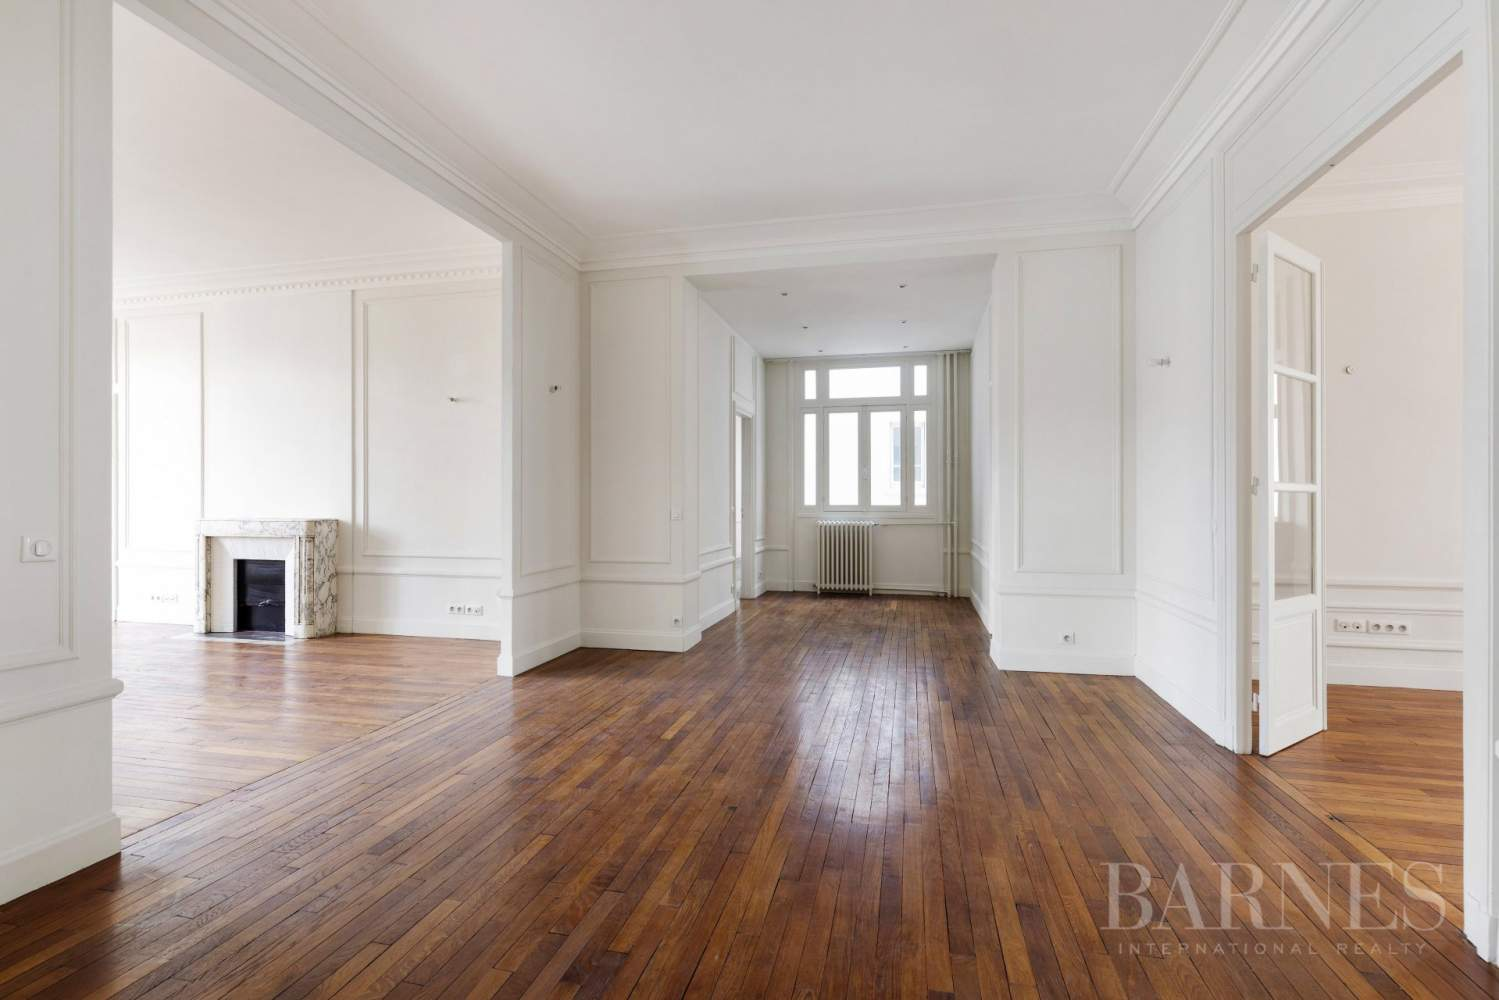 EXCLUSIVE - 8-ROOM APARTMENT FOR SALE - RENOVATED 1930s BUILDING - NEUILLY/PASTEUR picture 11